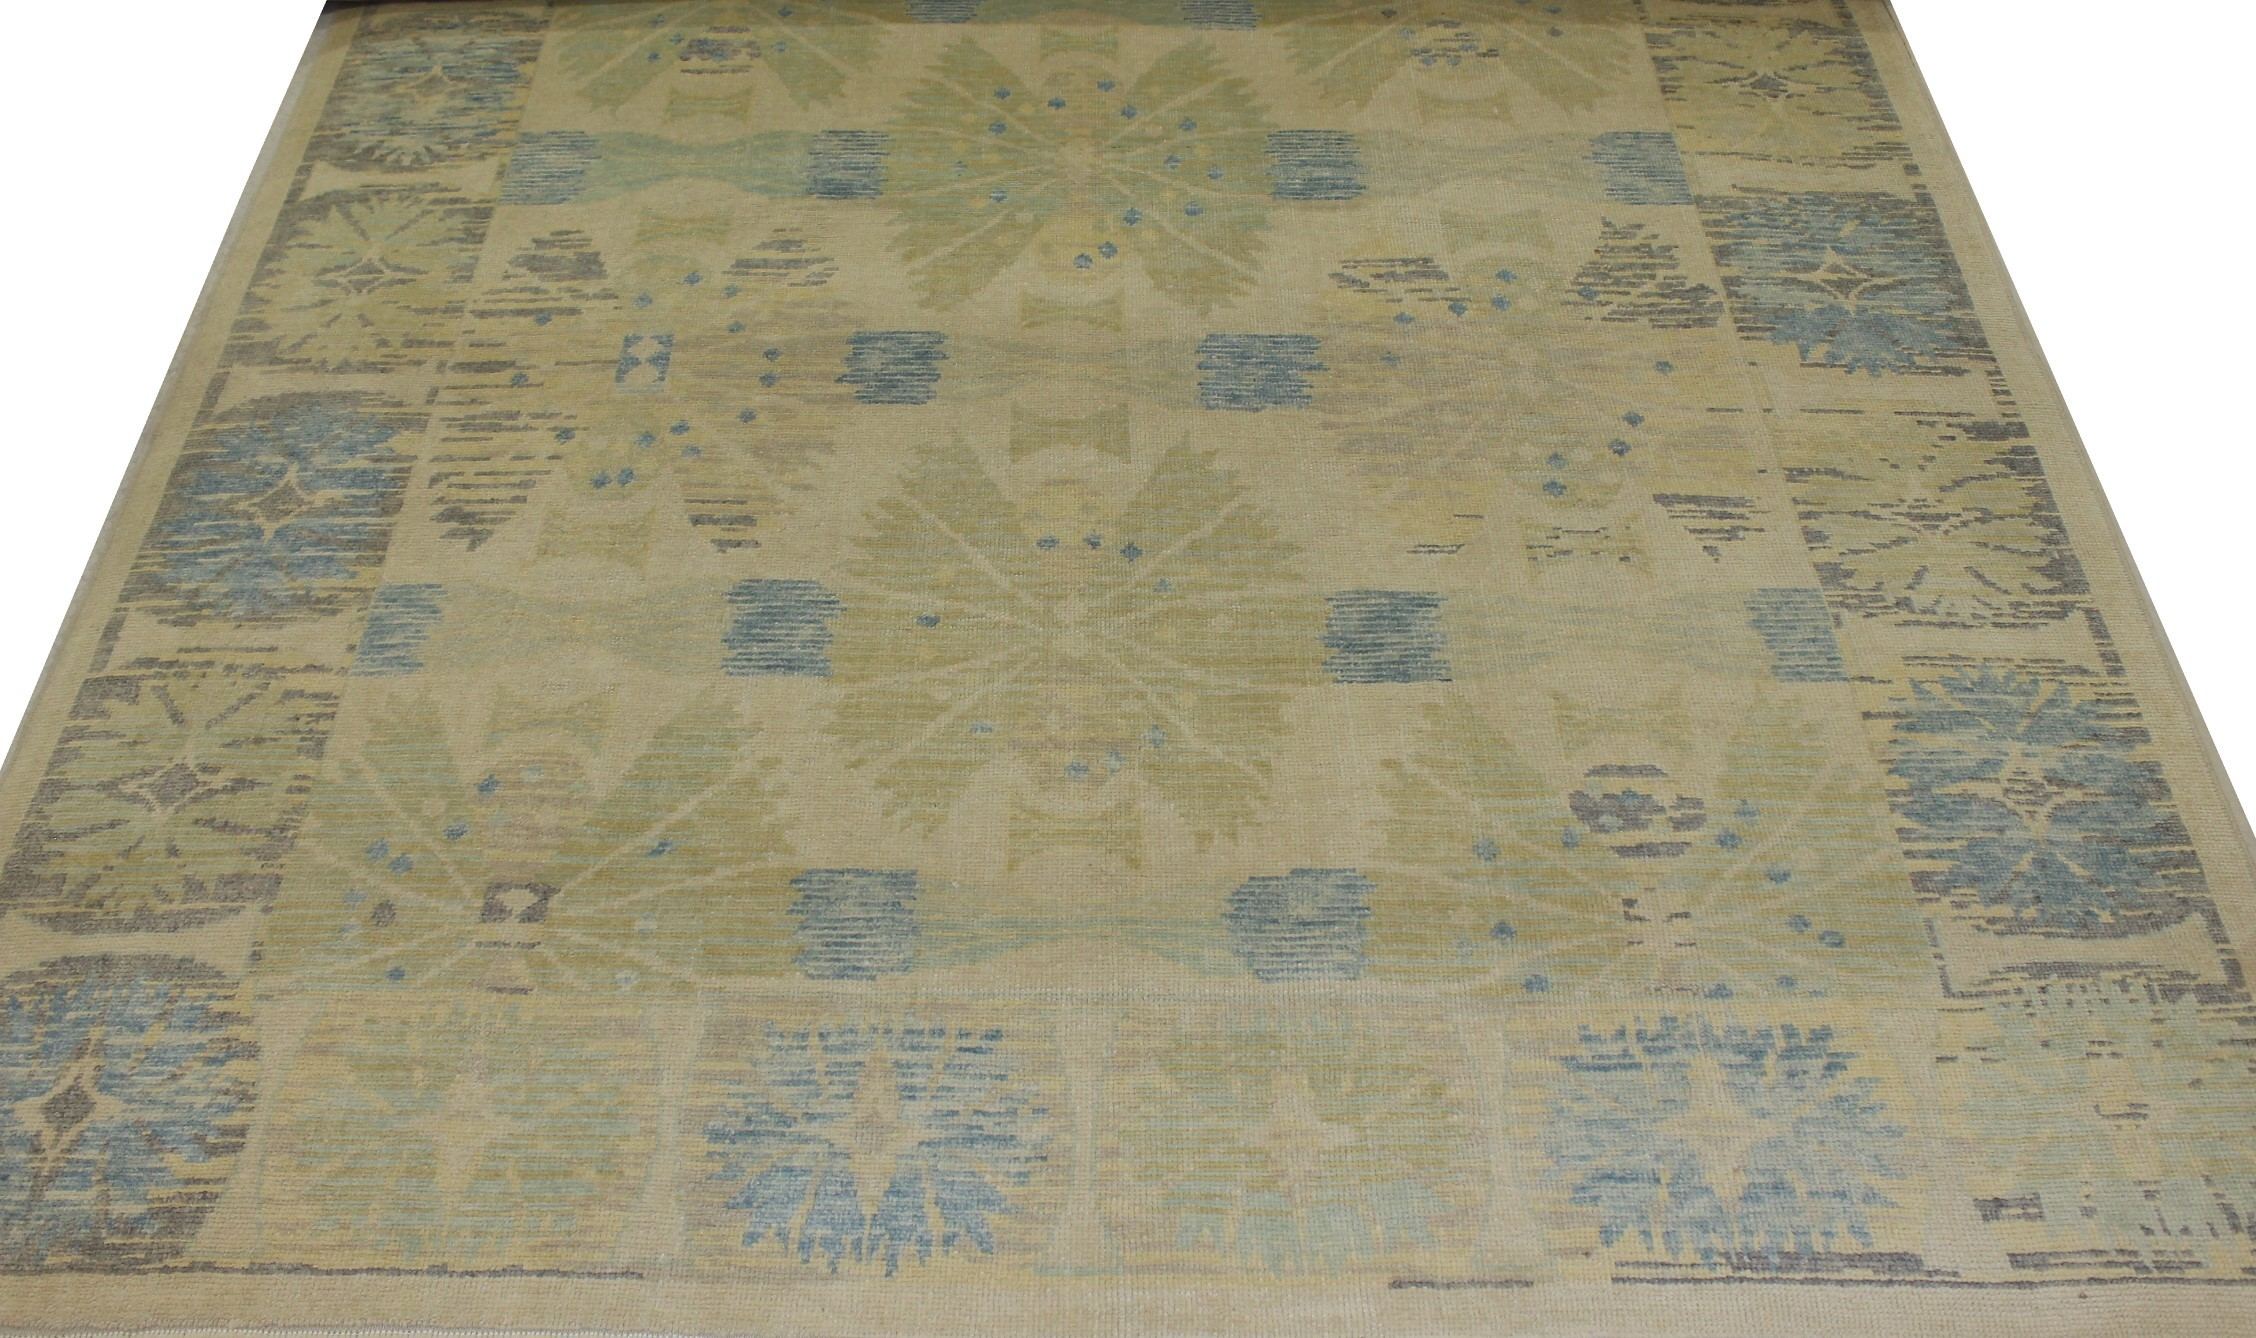 9x12 Oushak Hand Knotted Wool Area Rug - MR021668